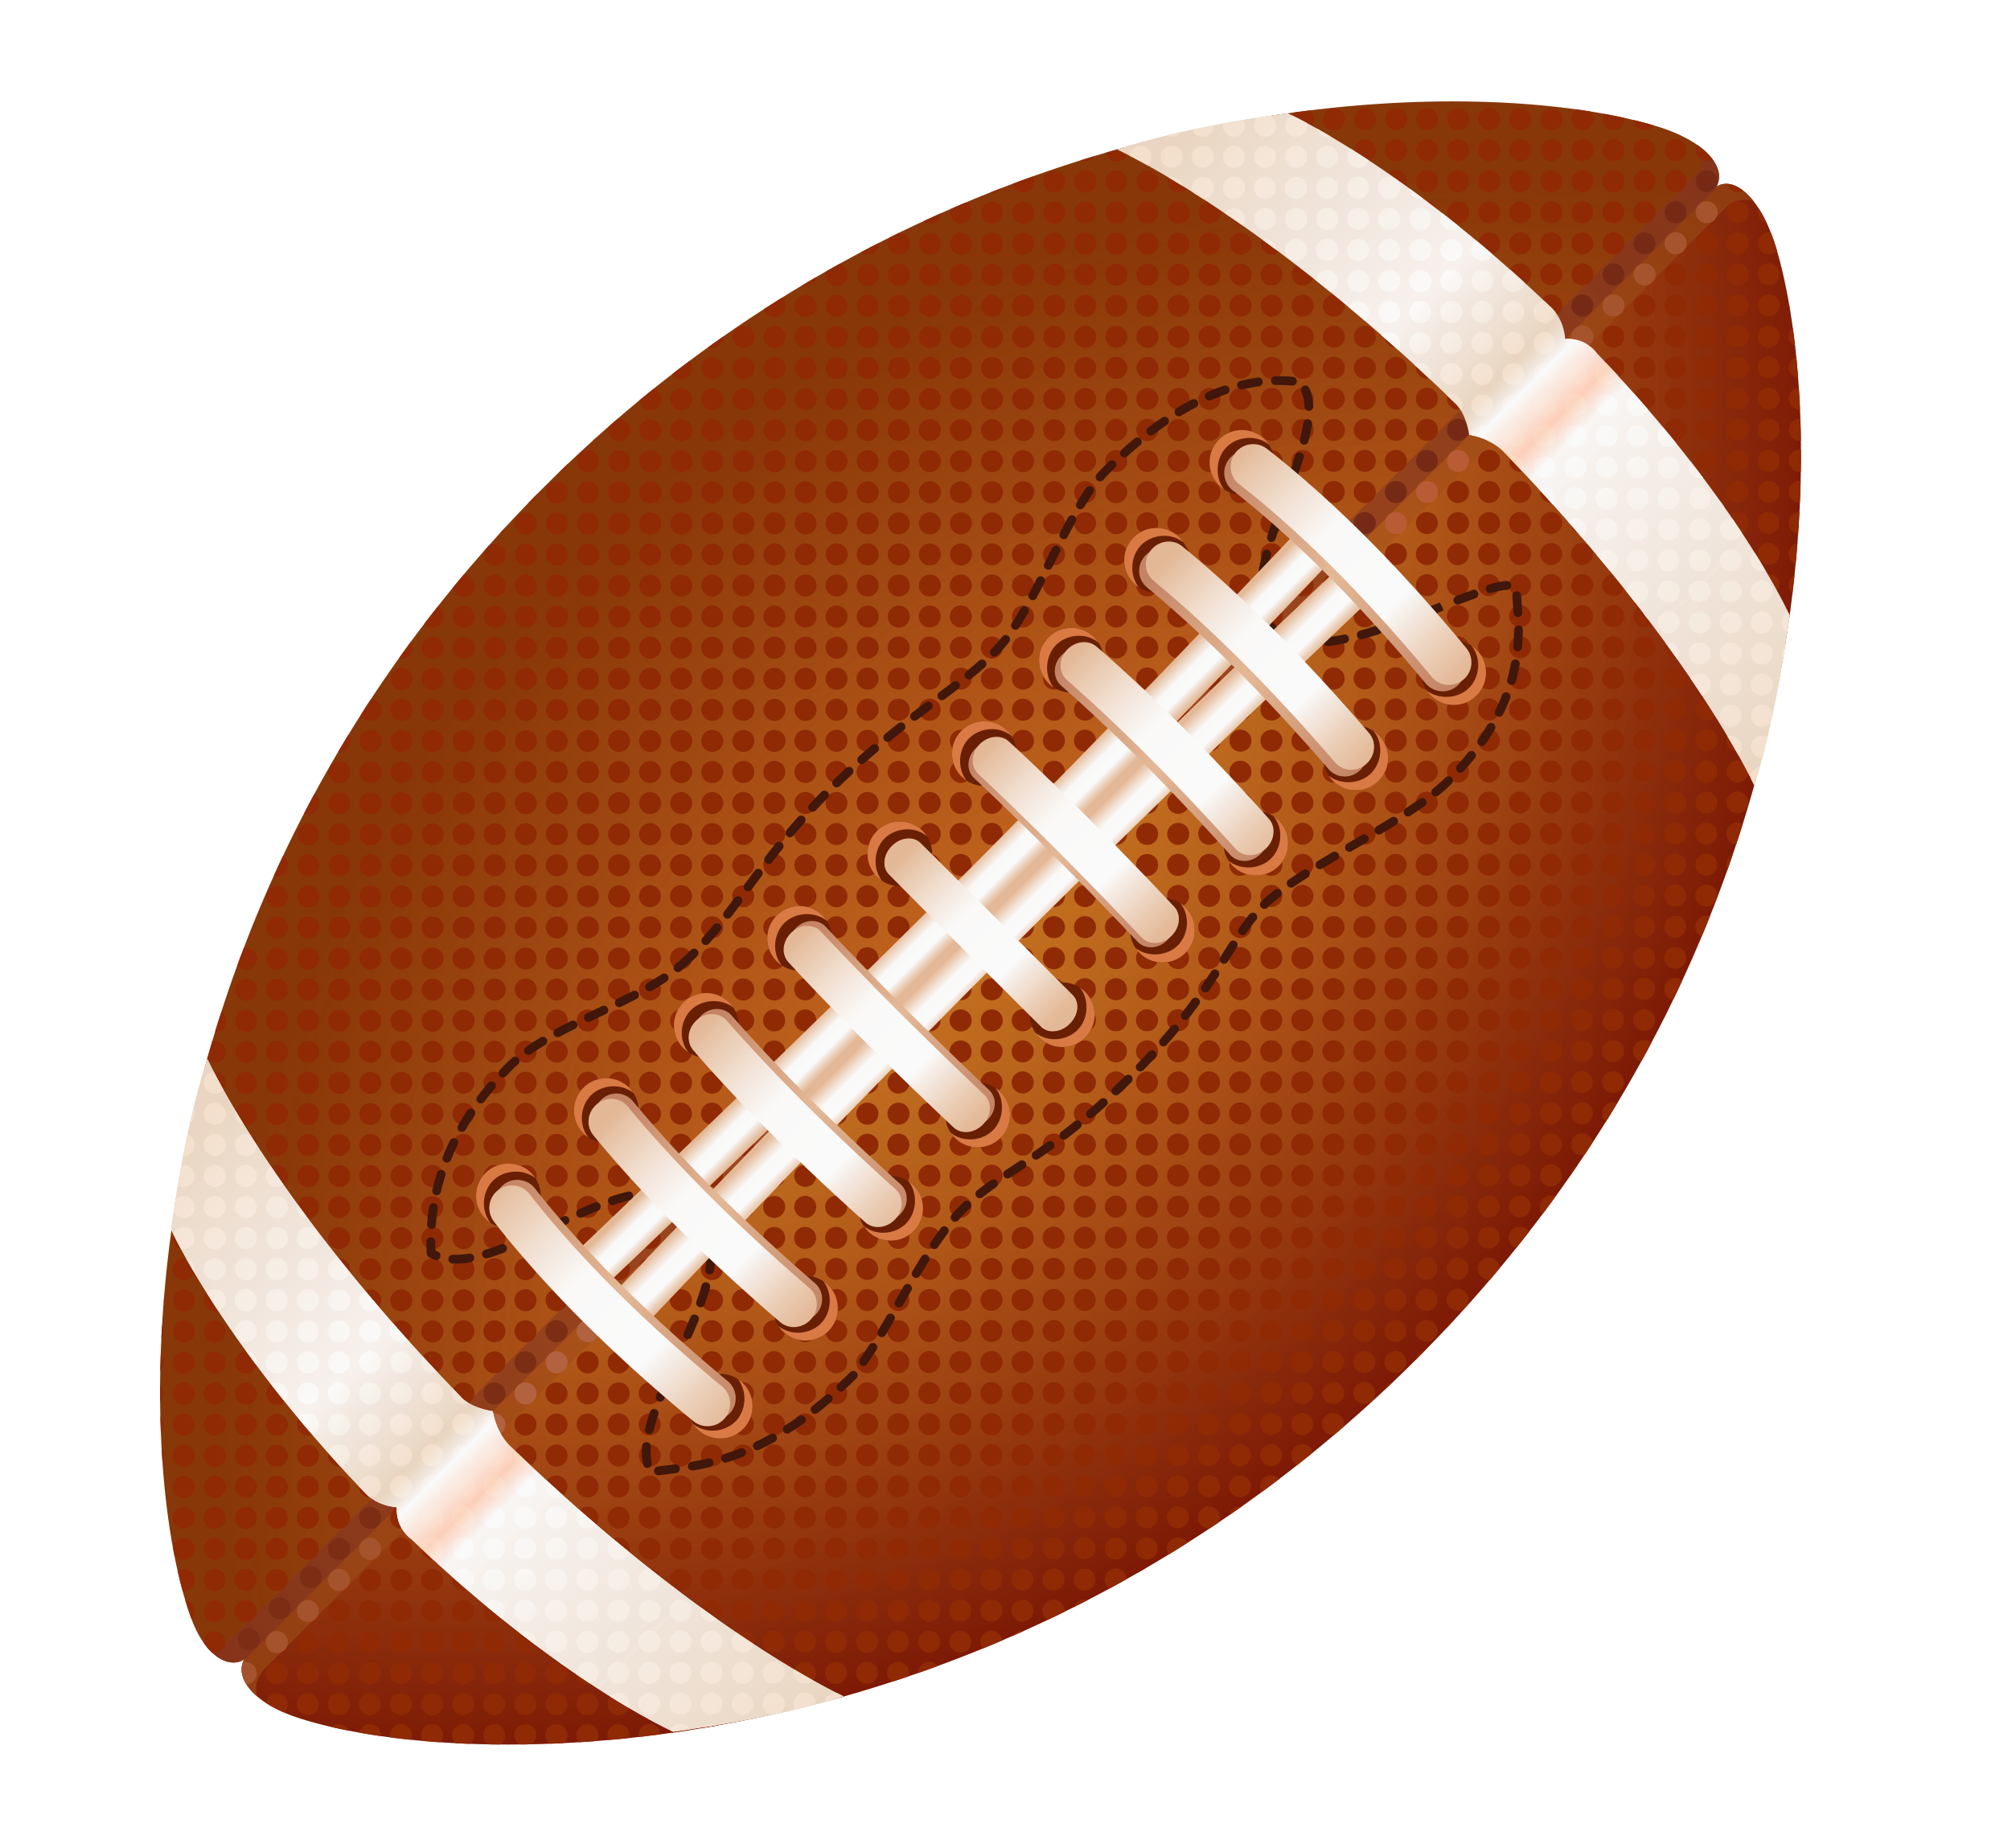 Free Football Clipart Transparent Background, Download Free